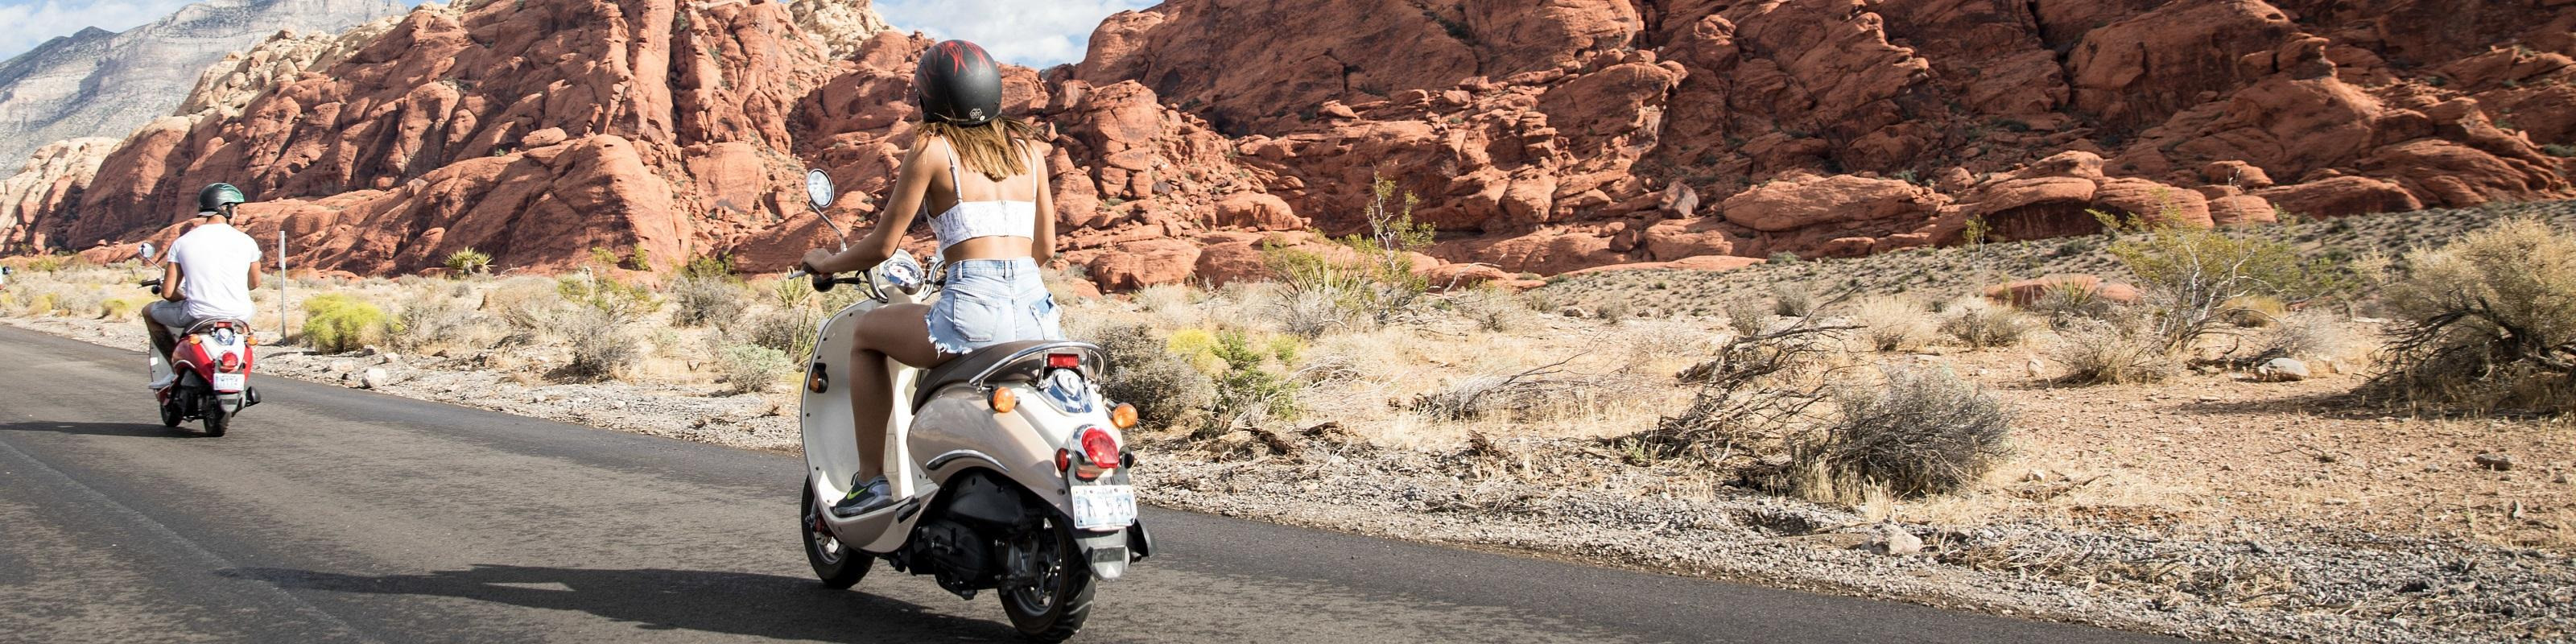 Couple on a scooter tour of Red Rock Canyon from Las Vegas